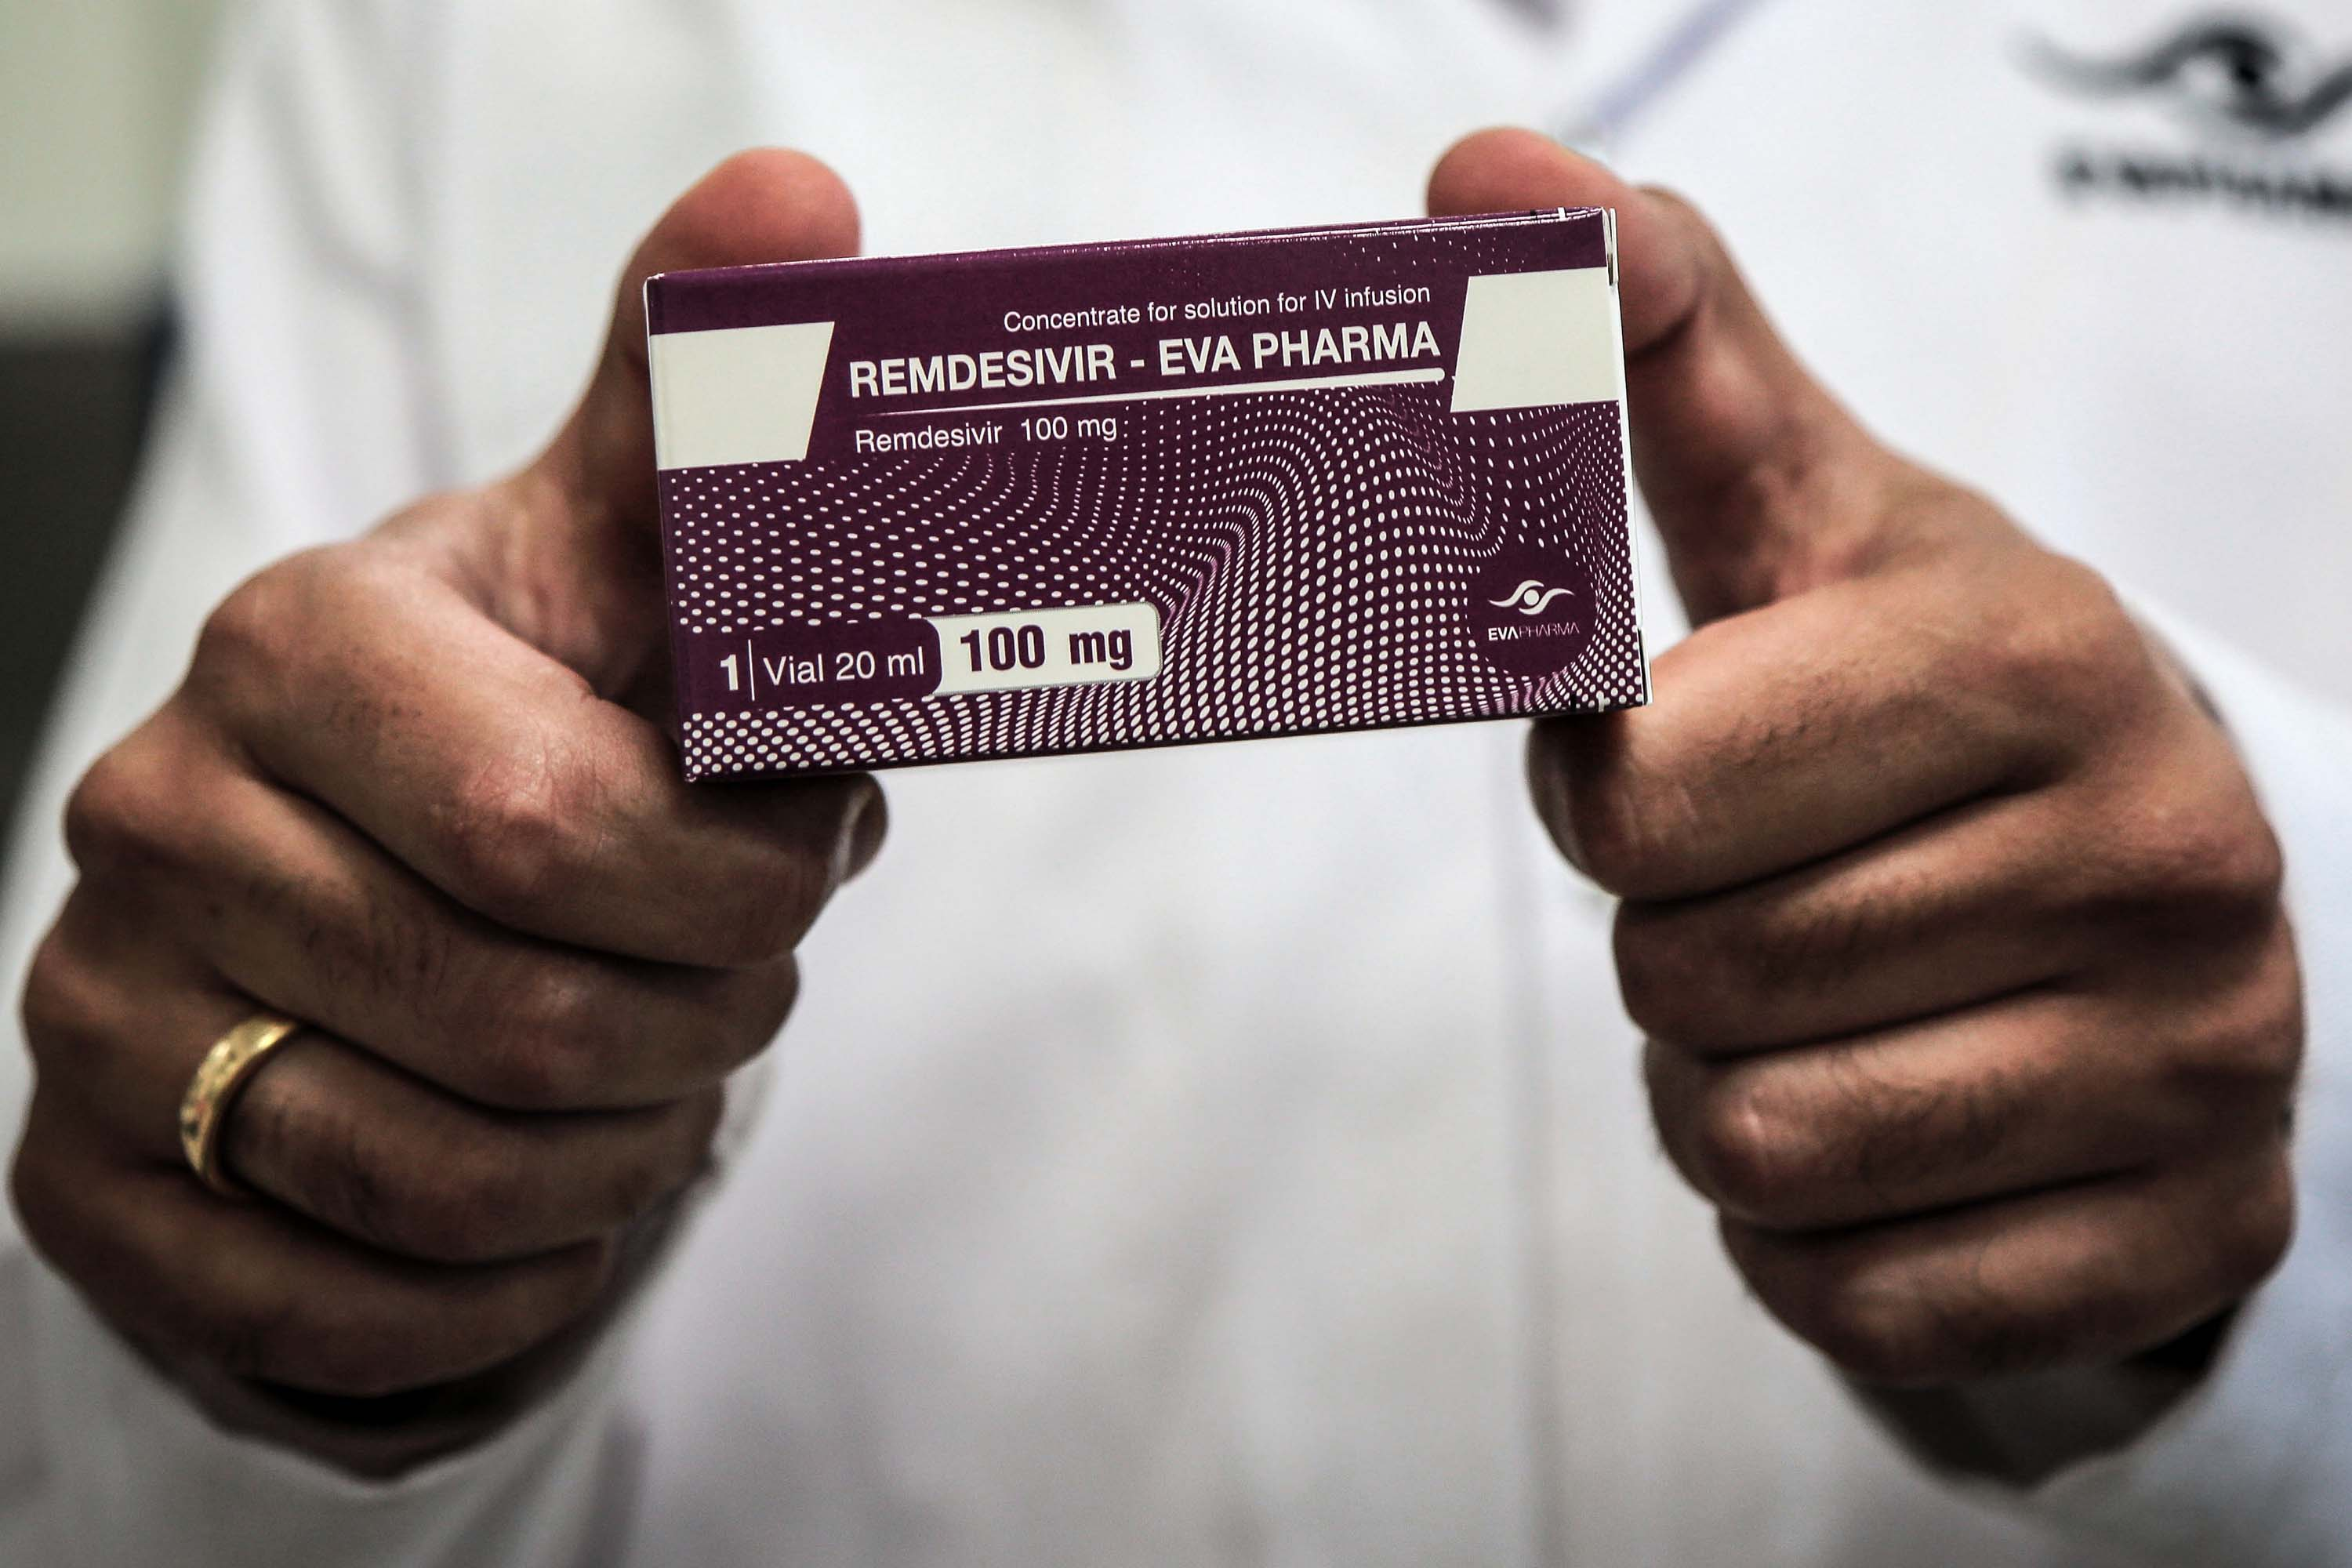 An employee of the Egyptian pharmaceutical company Eva Pharma holds a pack of the antiviral medication remdesivir at the company's factory in Giza, Egypt, in June 2020.